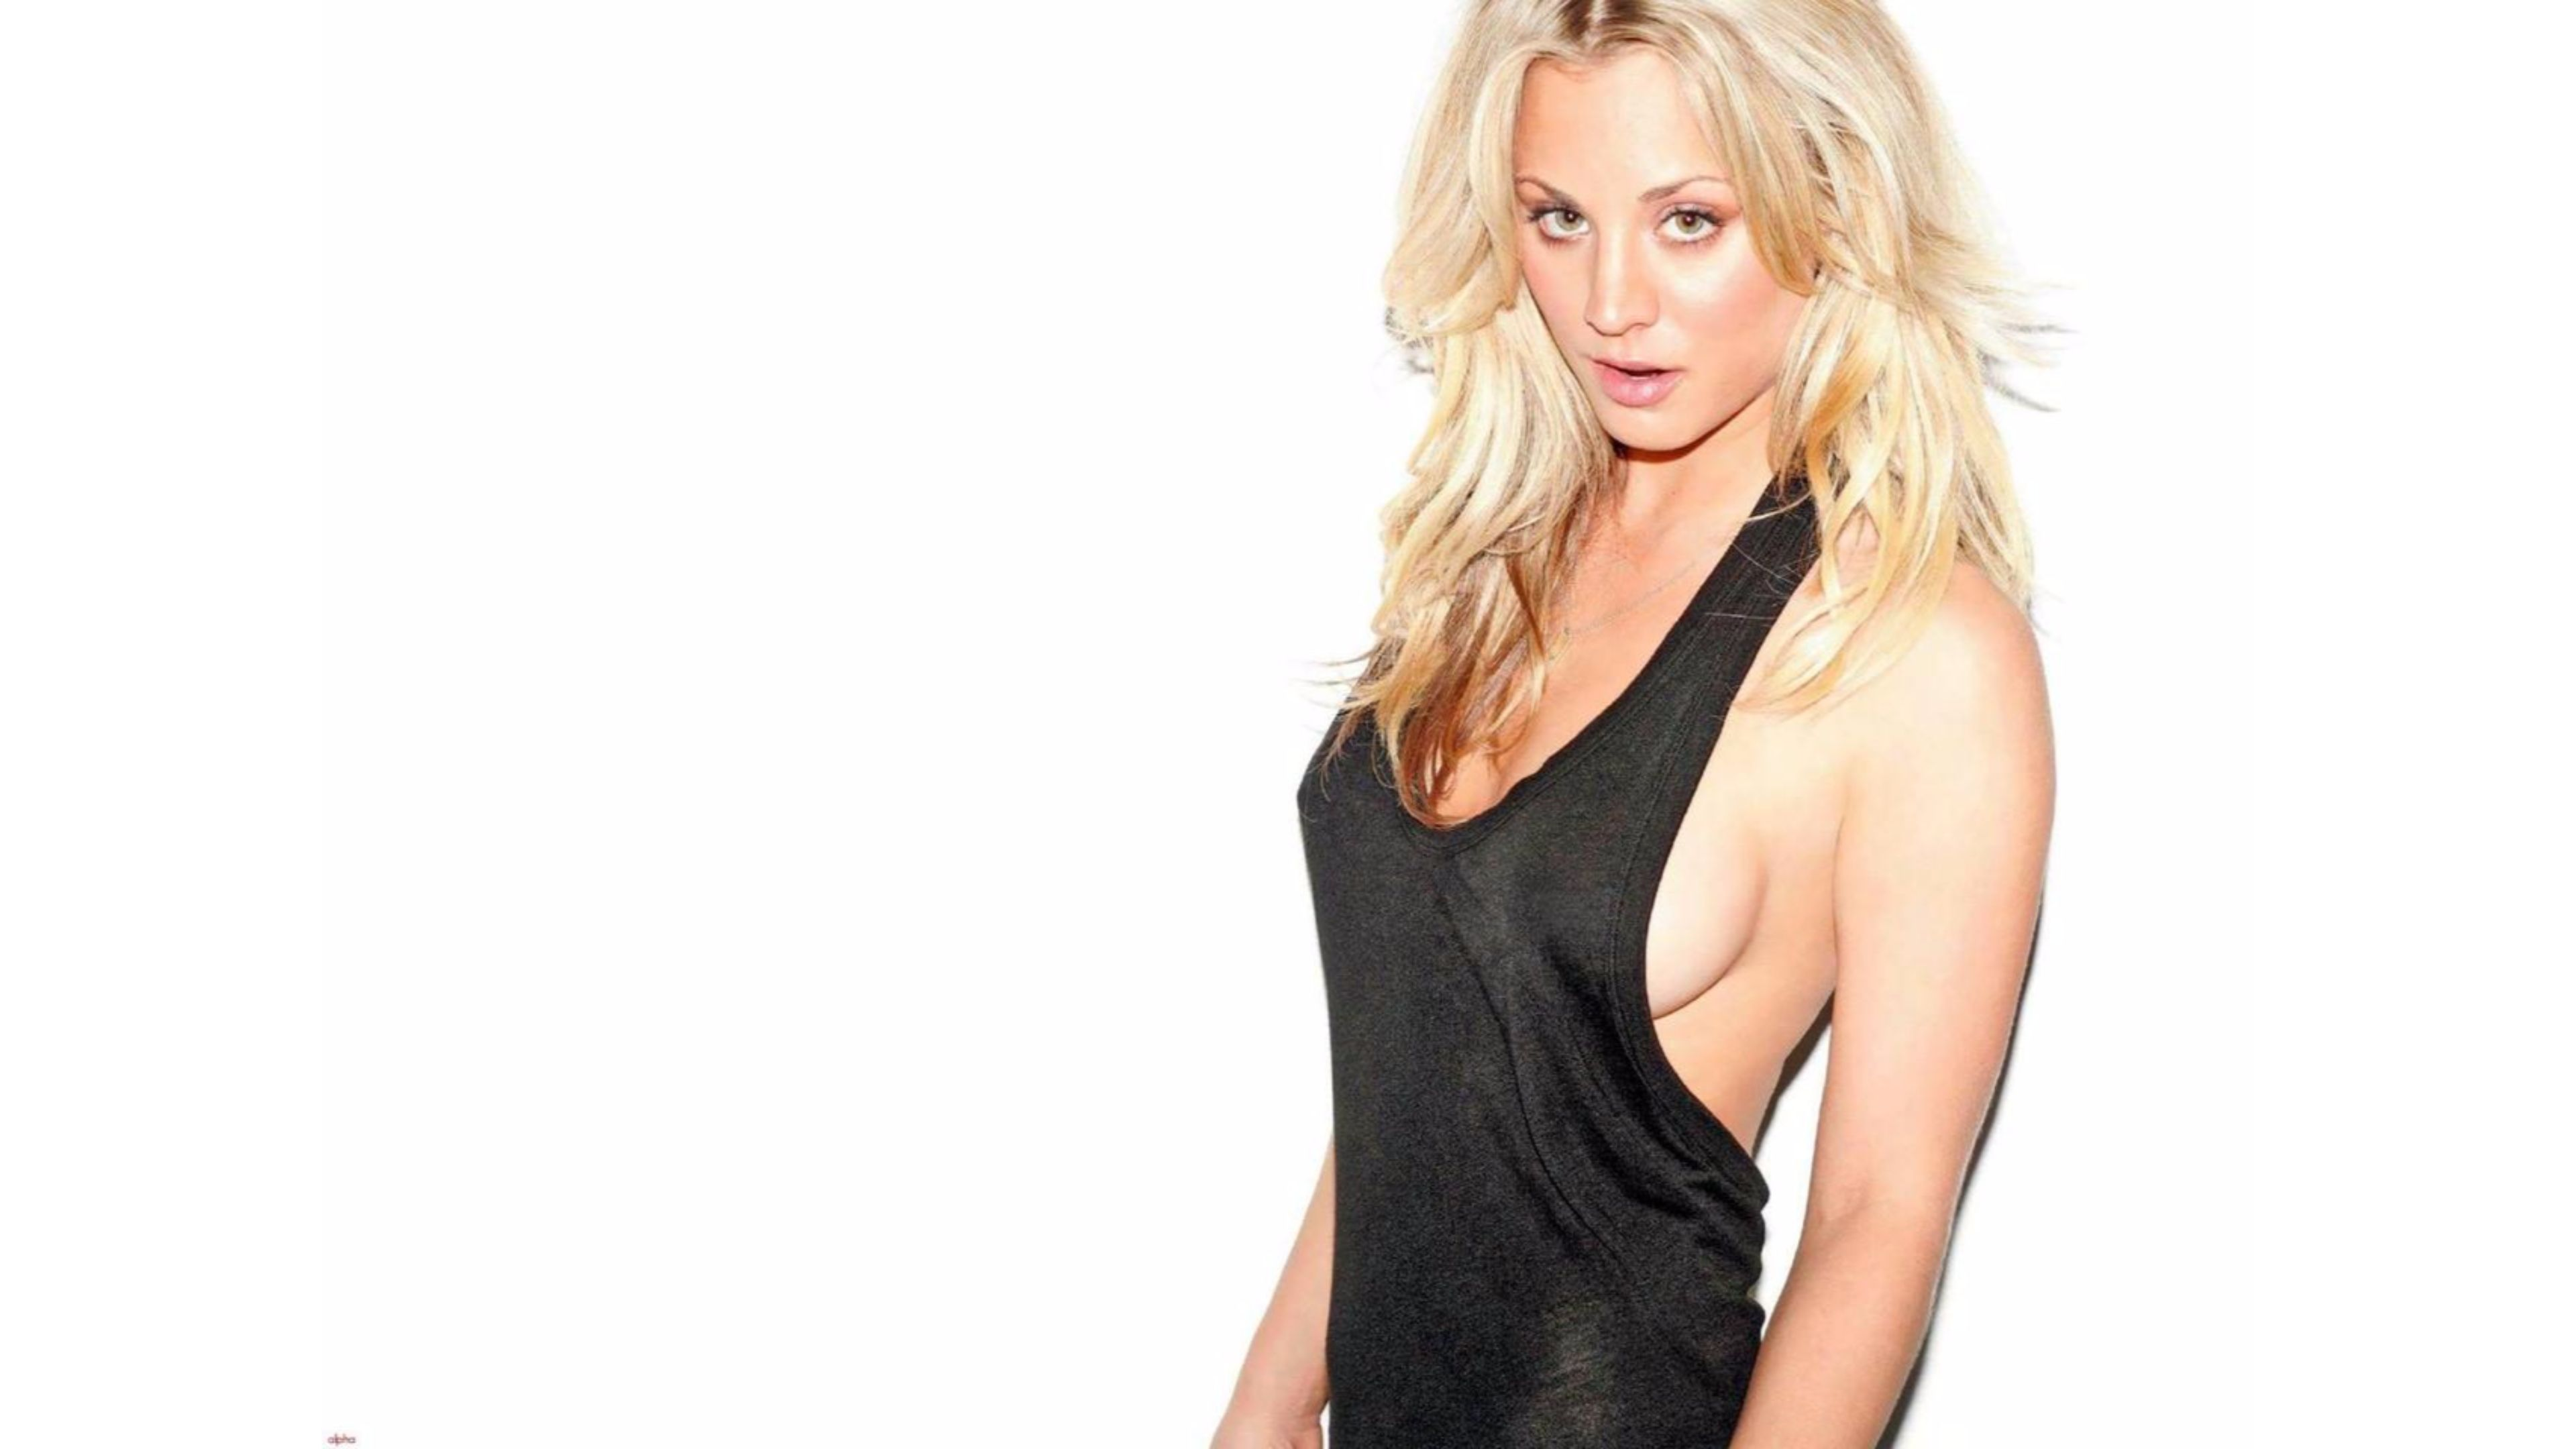 3840x2160 - Kaley Cuoco Wallpapers 9